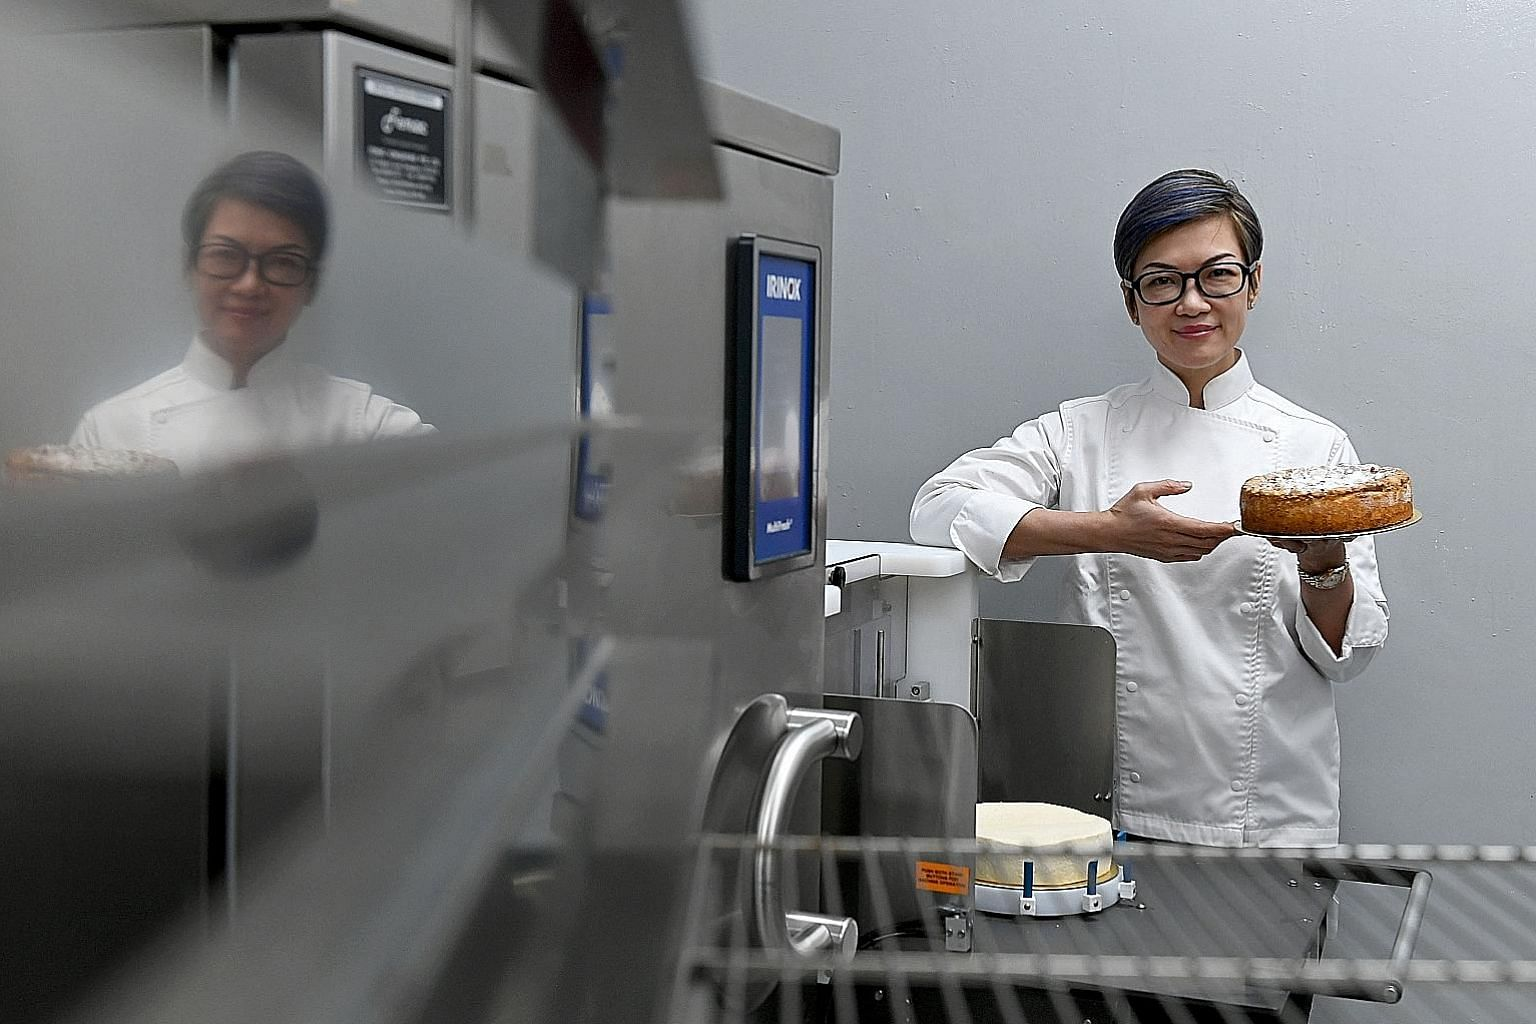 Technology takes care of the more mundane tasks so pastry chef Gwen Lim and her employees can reduce man hours in the kitchen and use their skills more efficiently. ST PHOTO: DESMOND FOO